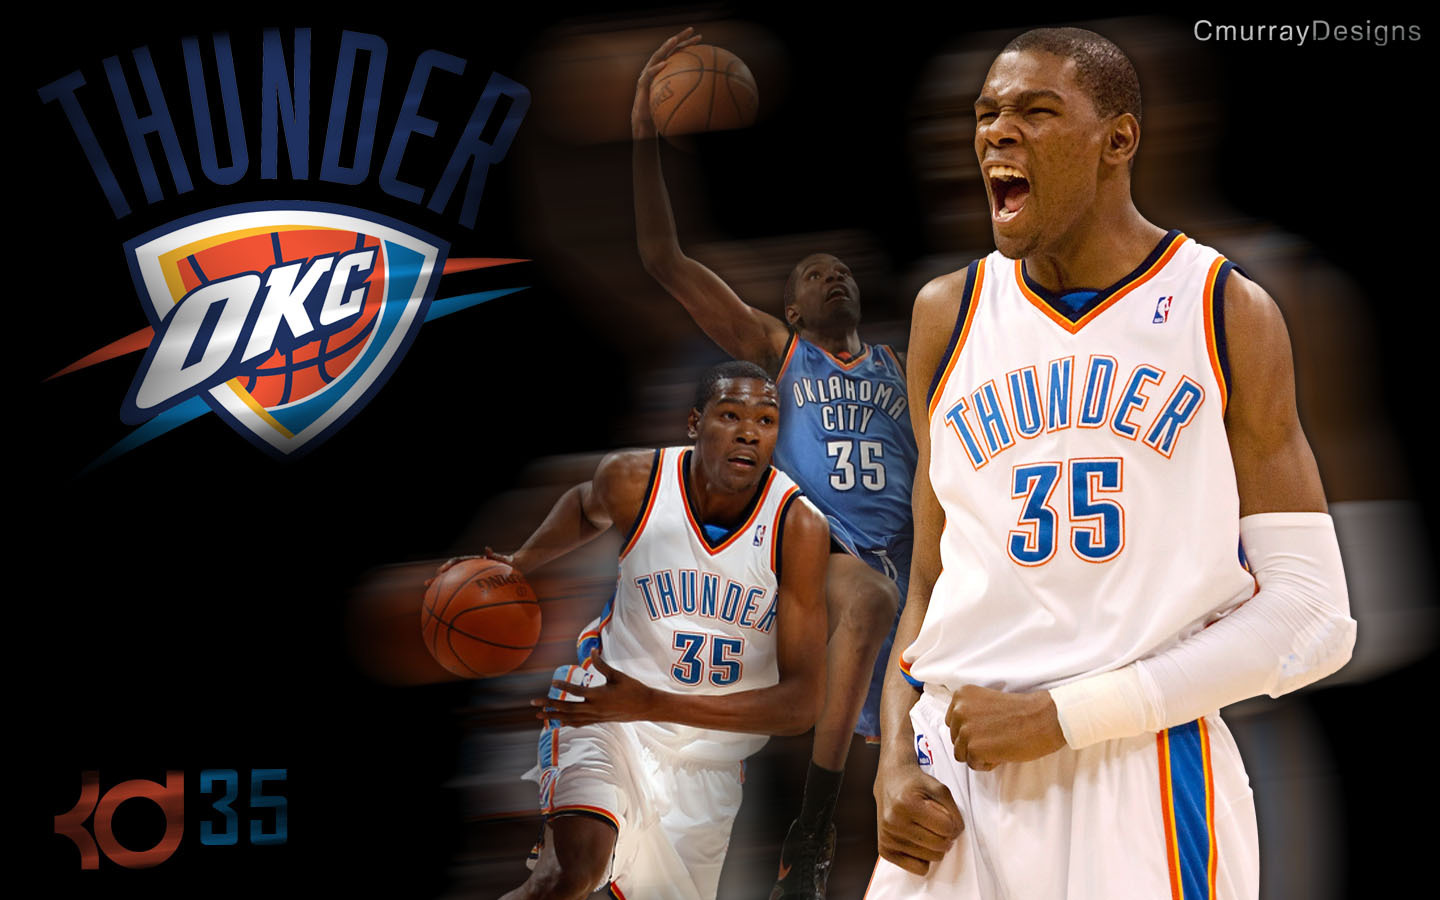 act kevin durant jpg kevin durant wallpaper by cfmurray41 d5fd75k 1440x900